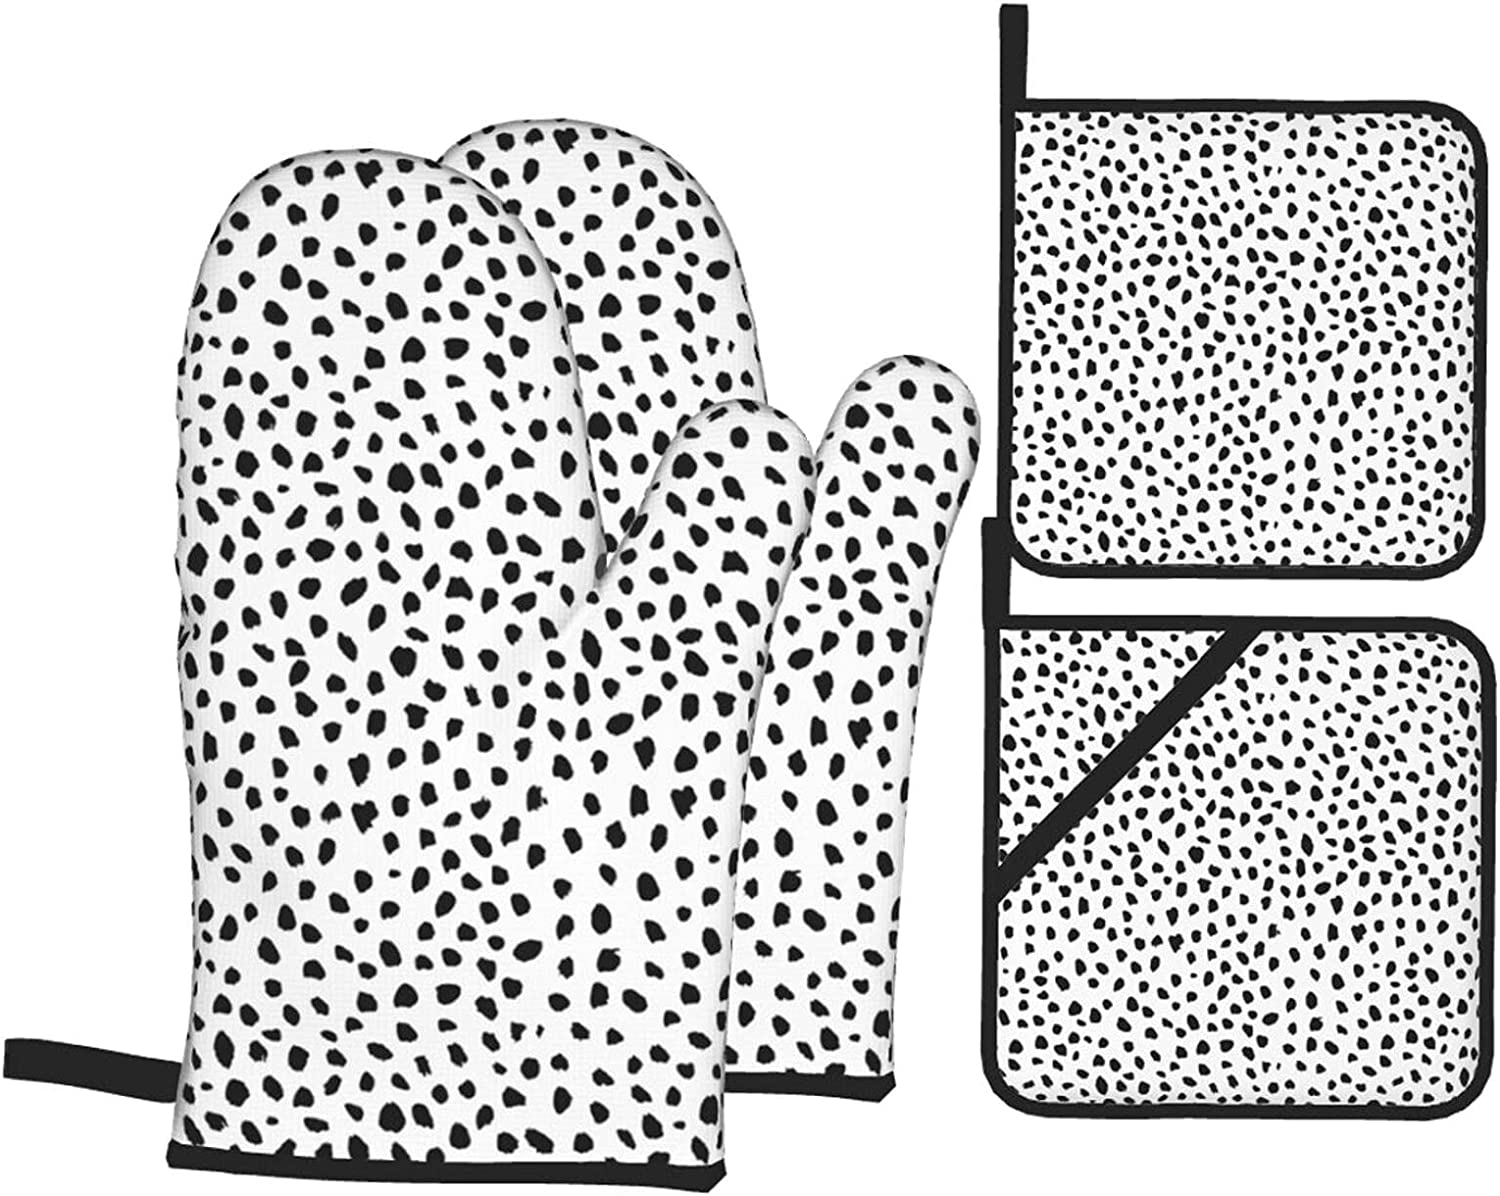 Genuine Free Shipping Black Dot New Shipping Free Oven Glove and Pot Set Waterproof Holder Polyester Fab